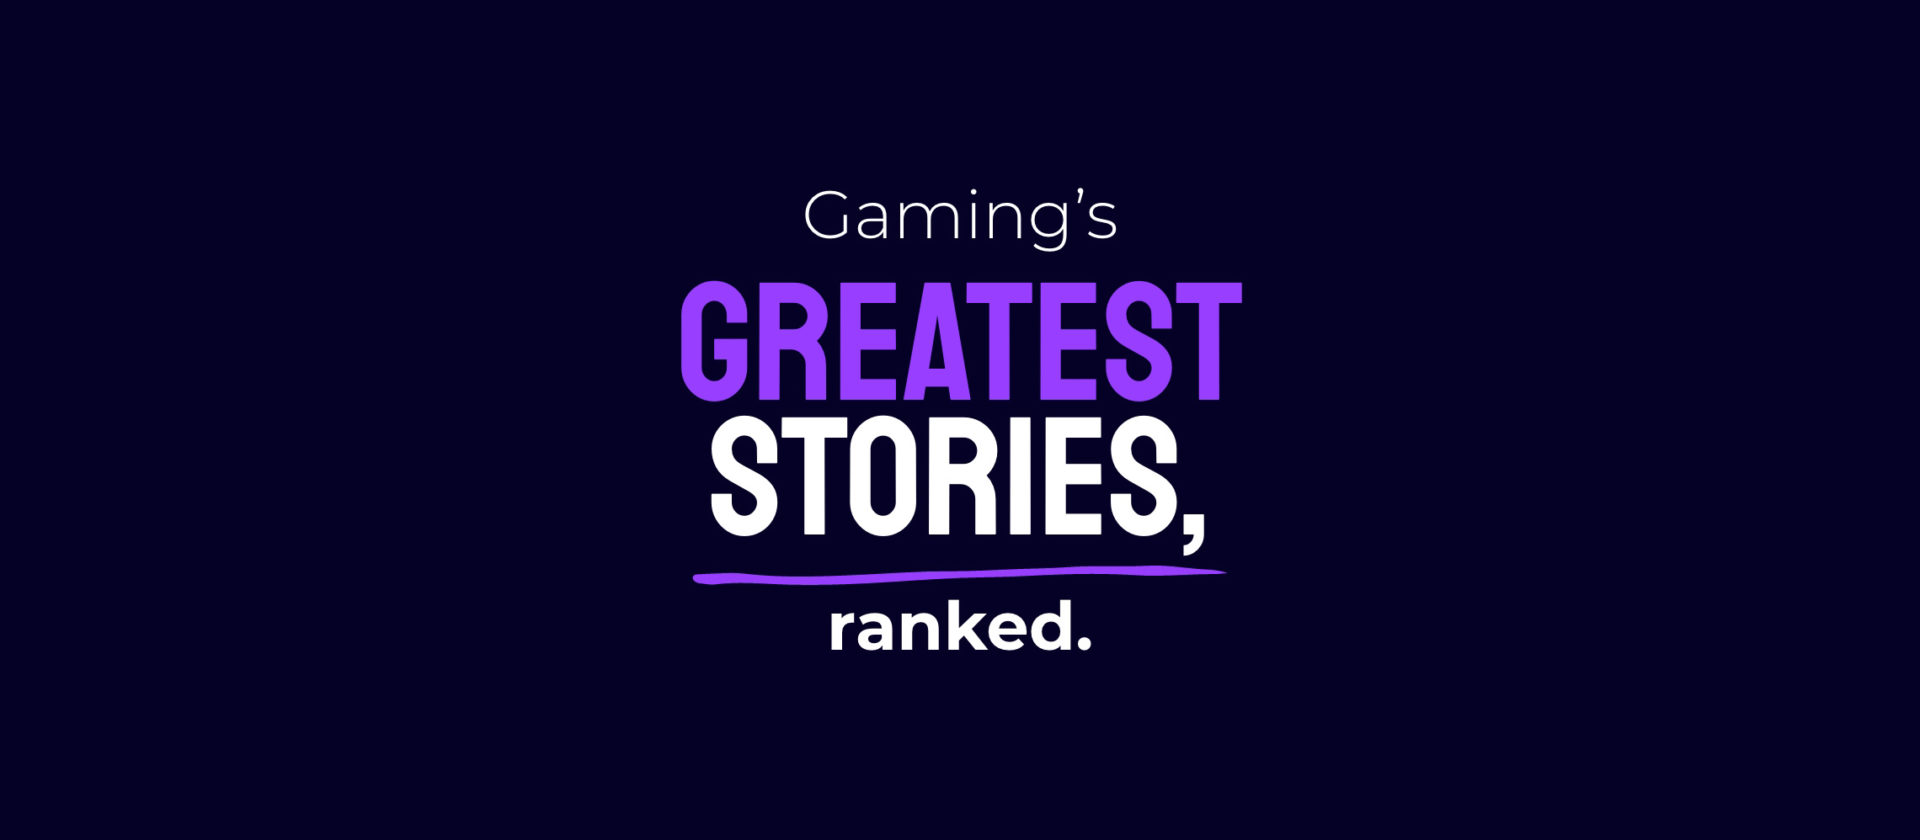 Gaming's greatest stories.